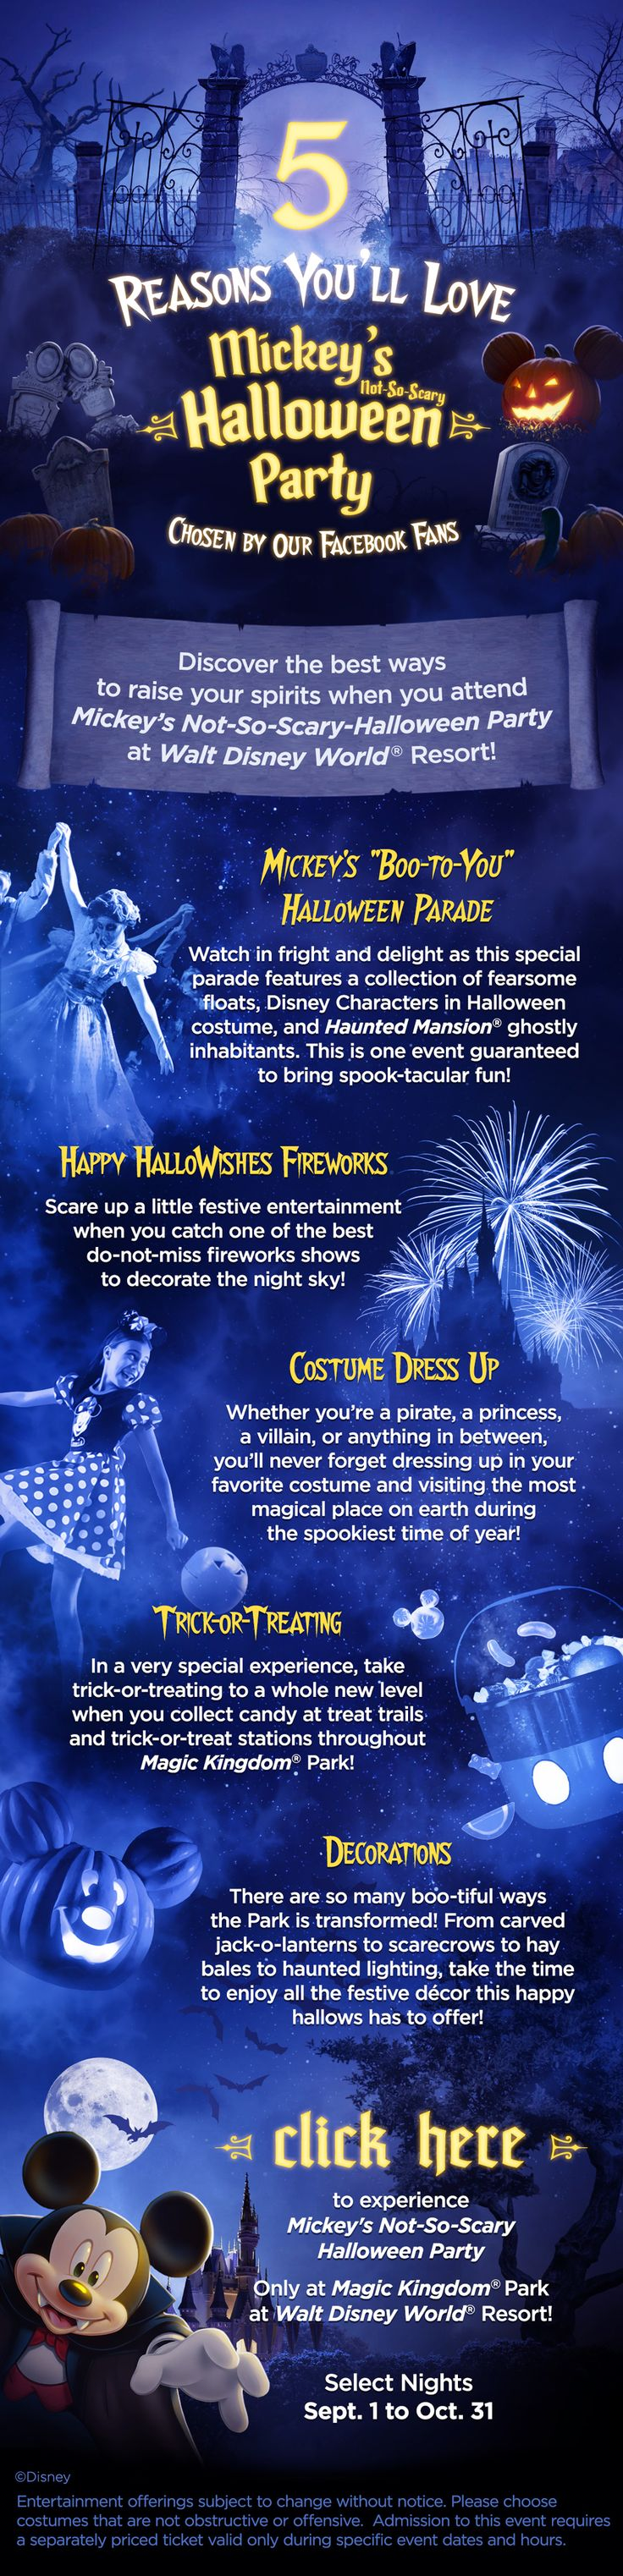 Mickey's Not So Scary Halloween Party is great fun and is a big factor in why going WDW in the Autumn is my favourite time of year to visit. Check out my photos from previous parties and decide for yourself whether it's worth the additional ticket cost!